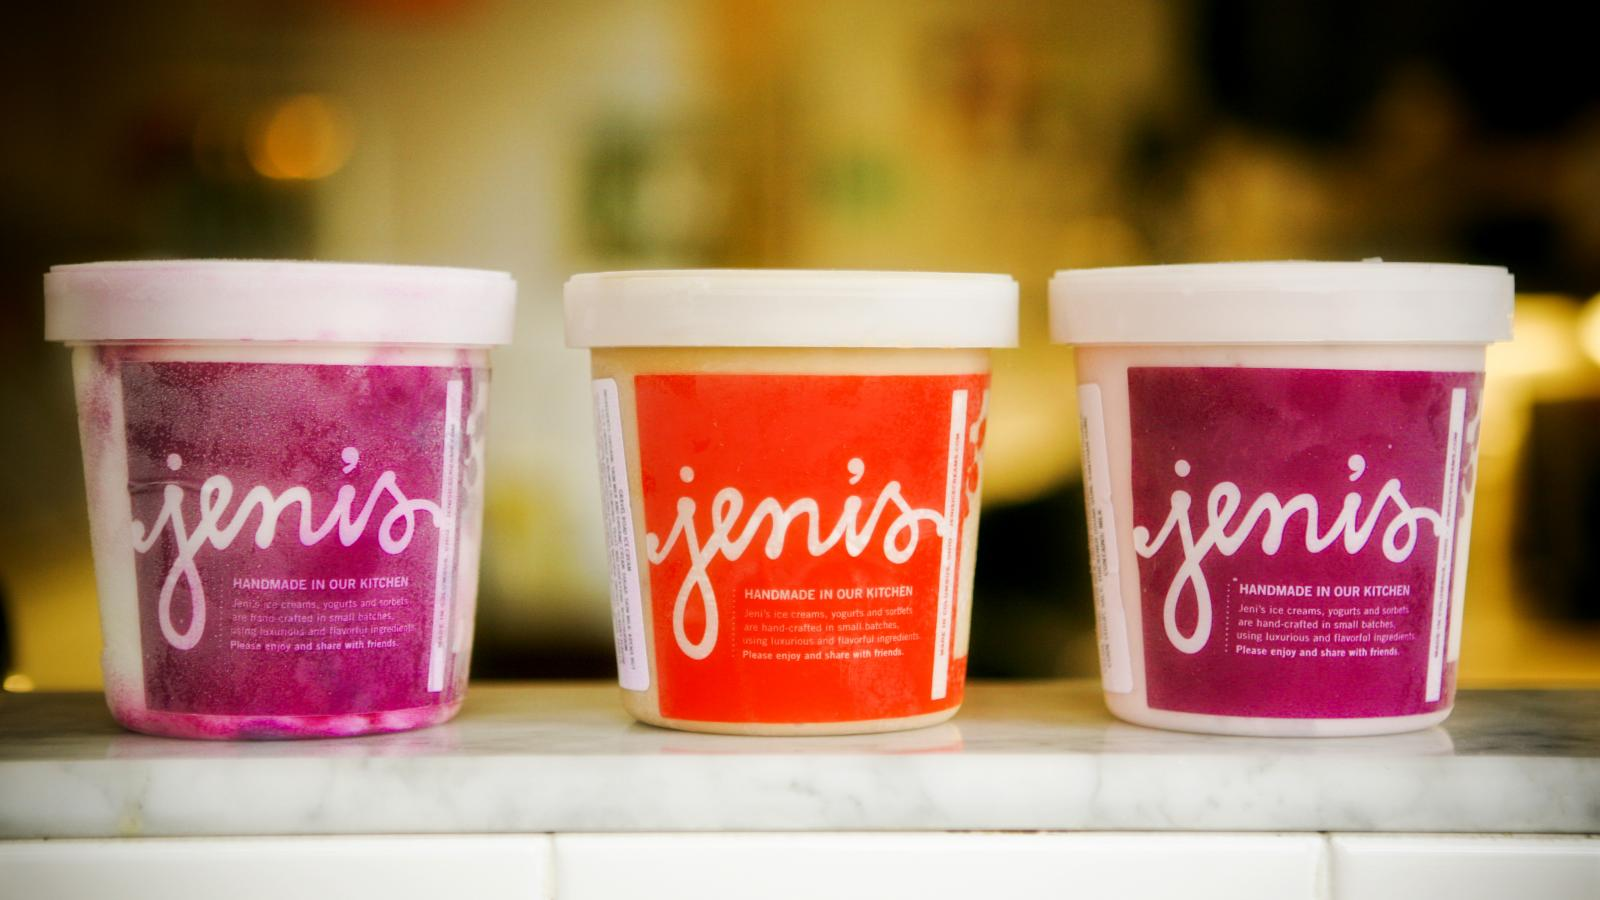 Jeni's Splendid Ice Creams pints Photo Credit: Jeni's Splendid Ice Creams